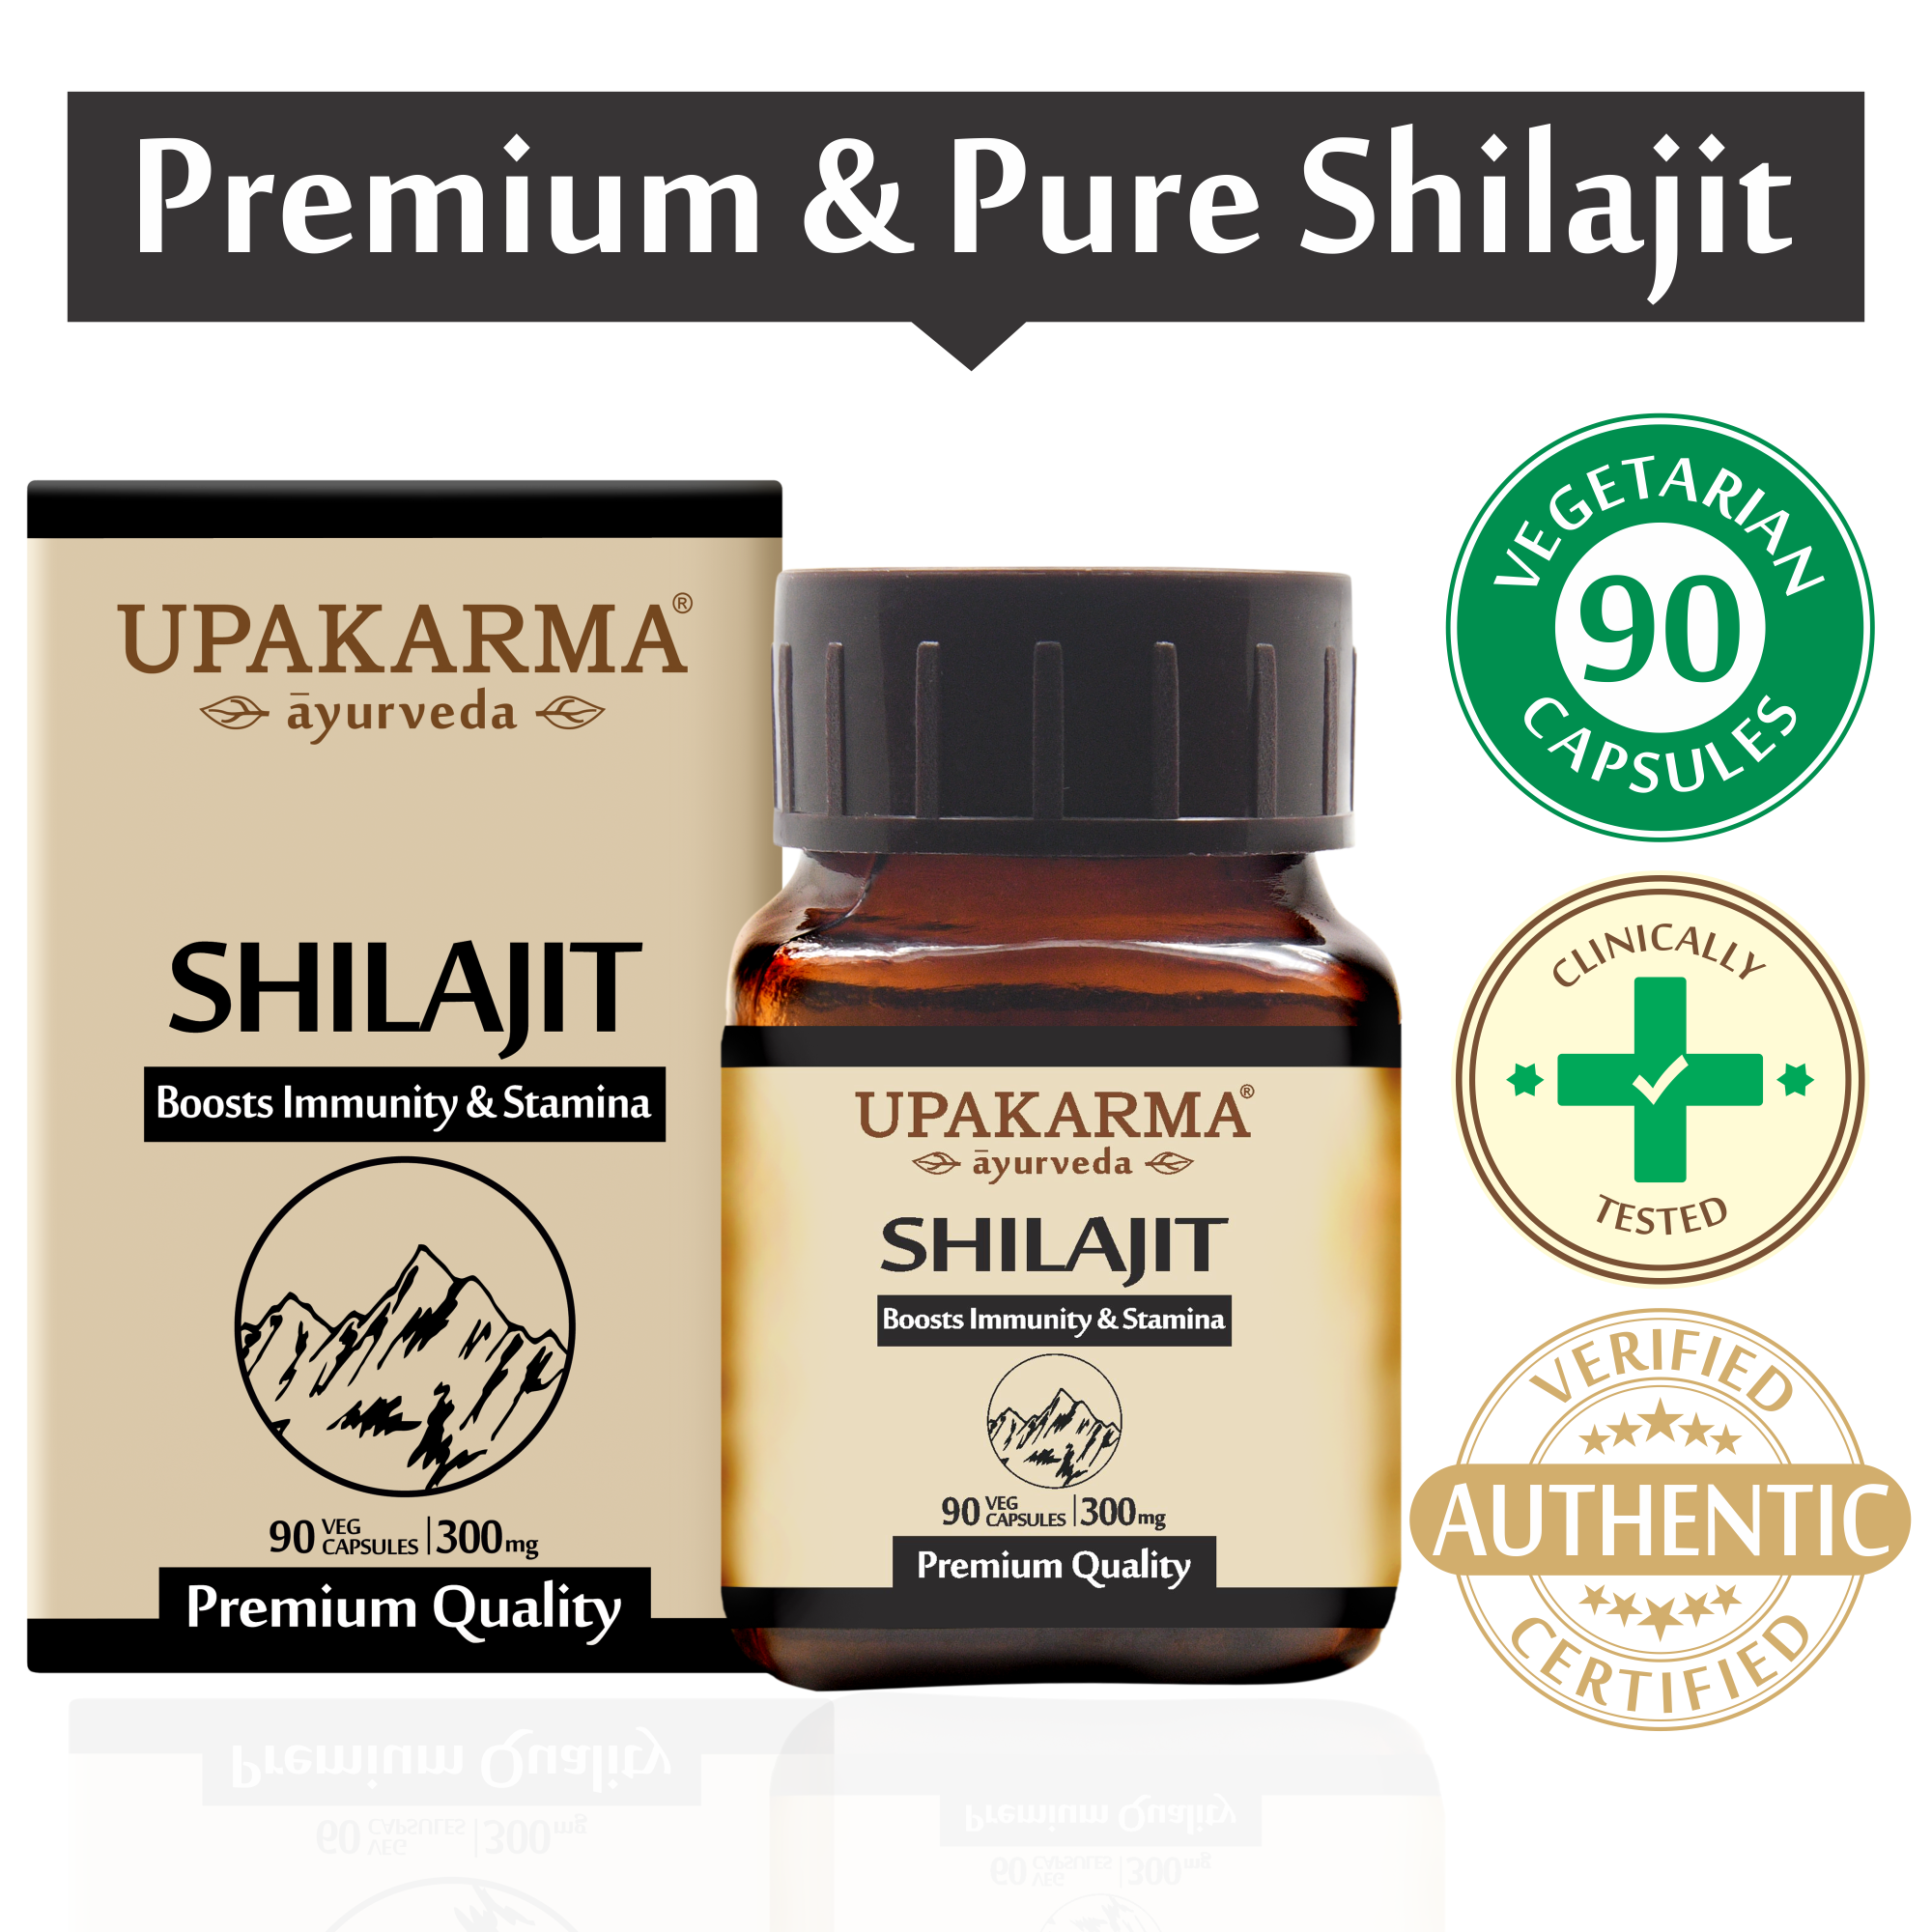 Upakarma Shilajit  Extracts 100% Natural & Pure Shilajeet For Men - 90 Capsules - Pack of 1